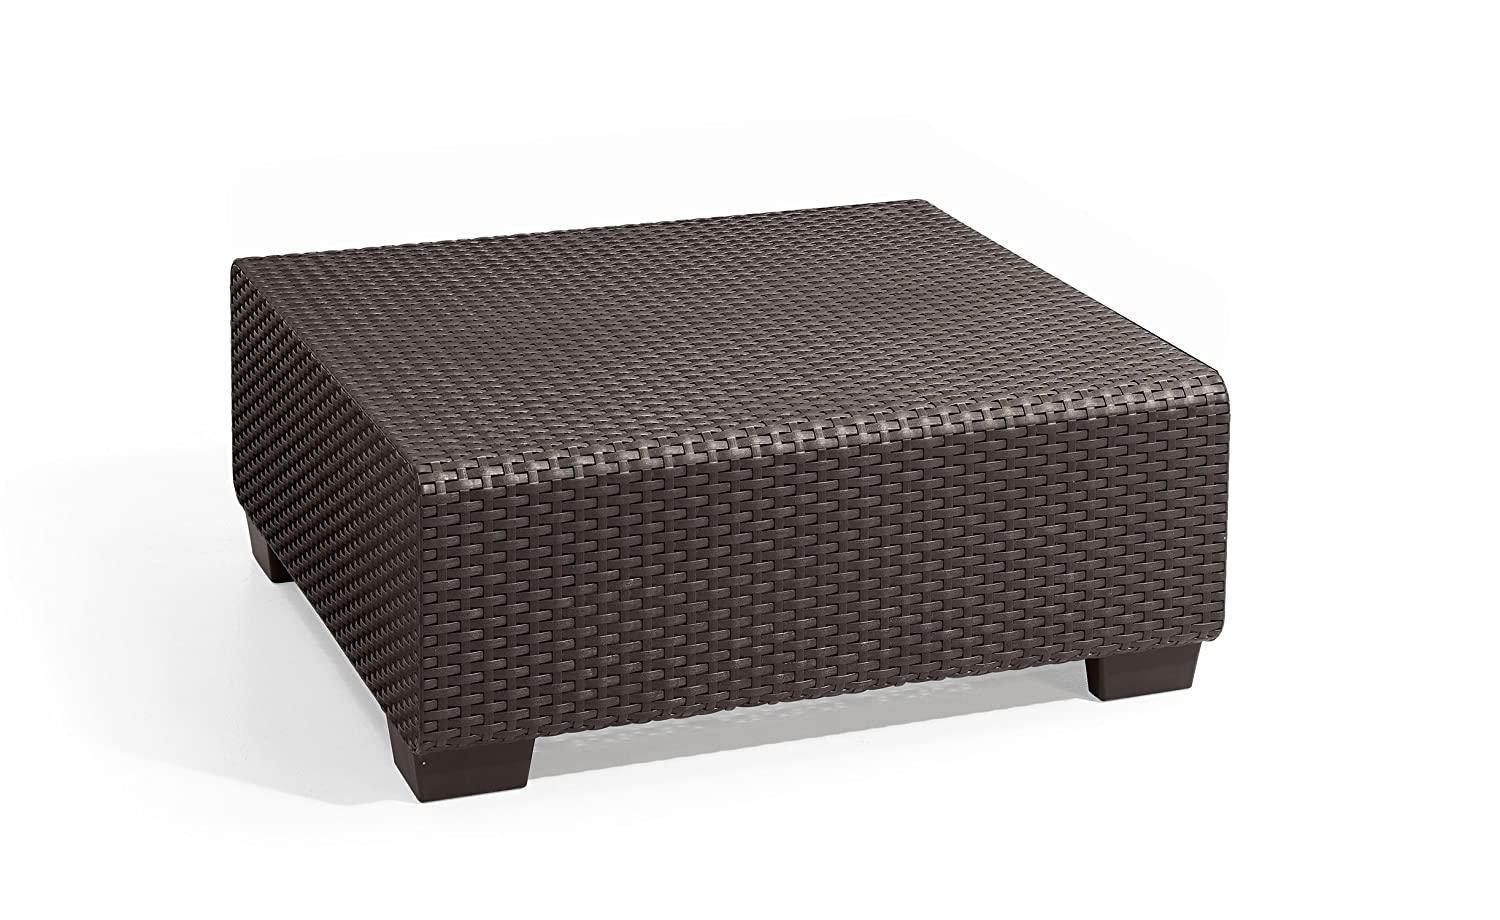 Keter Sapporo Modular Coffee Table Modern All Weather